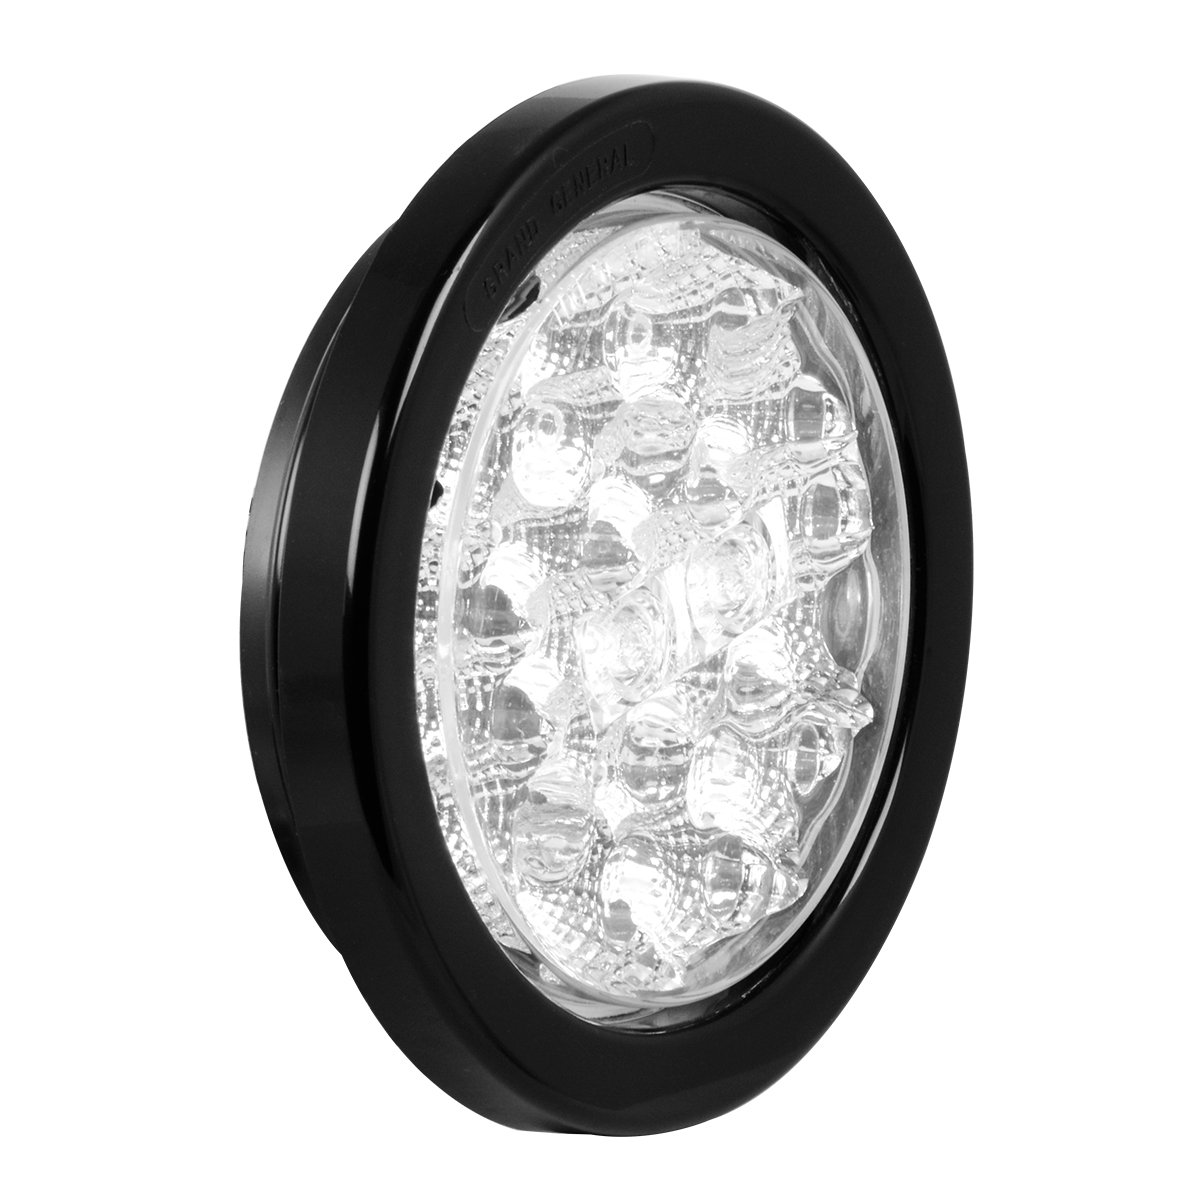 RVs Trailers Utility Vehicles Grommet and Pigtail for Trucks GG Grand General Grand General 77082BP Spyder 4 Round White LED Backup Includes Light Buses